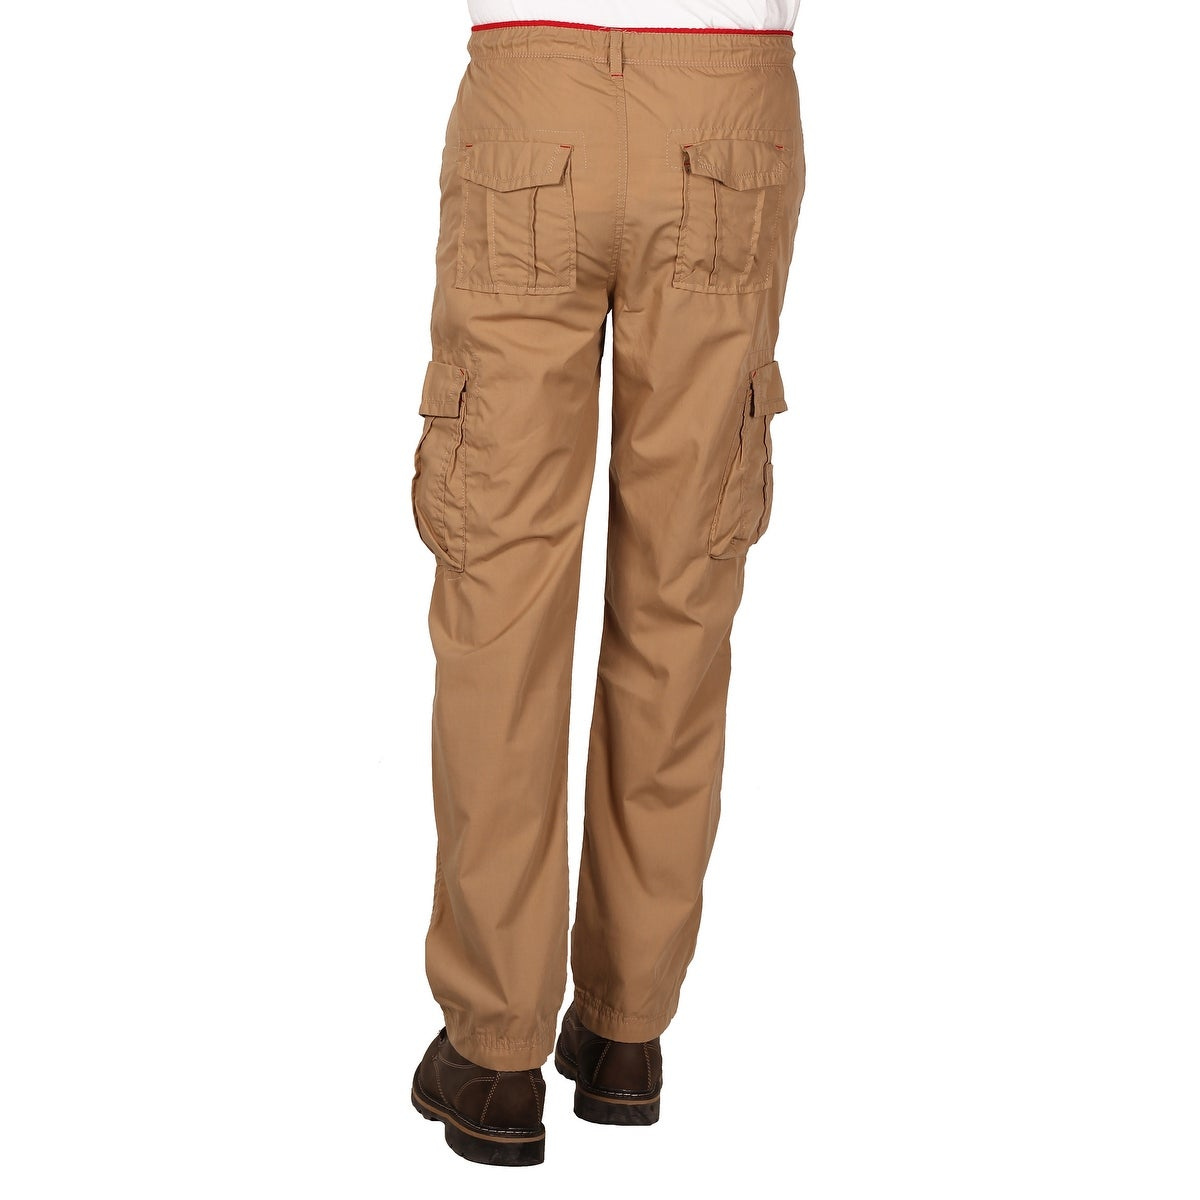 f41da10802 Shop Camp & Campus Men's Elastic Waist Pull-On Poplin Cargo Pant ...